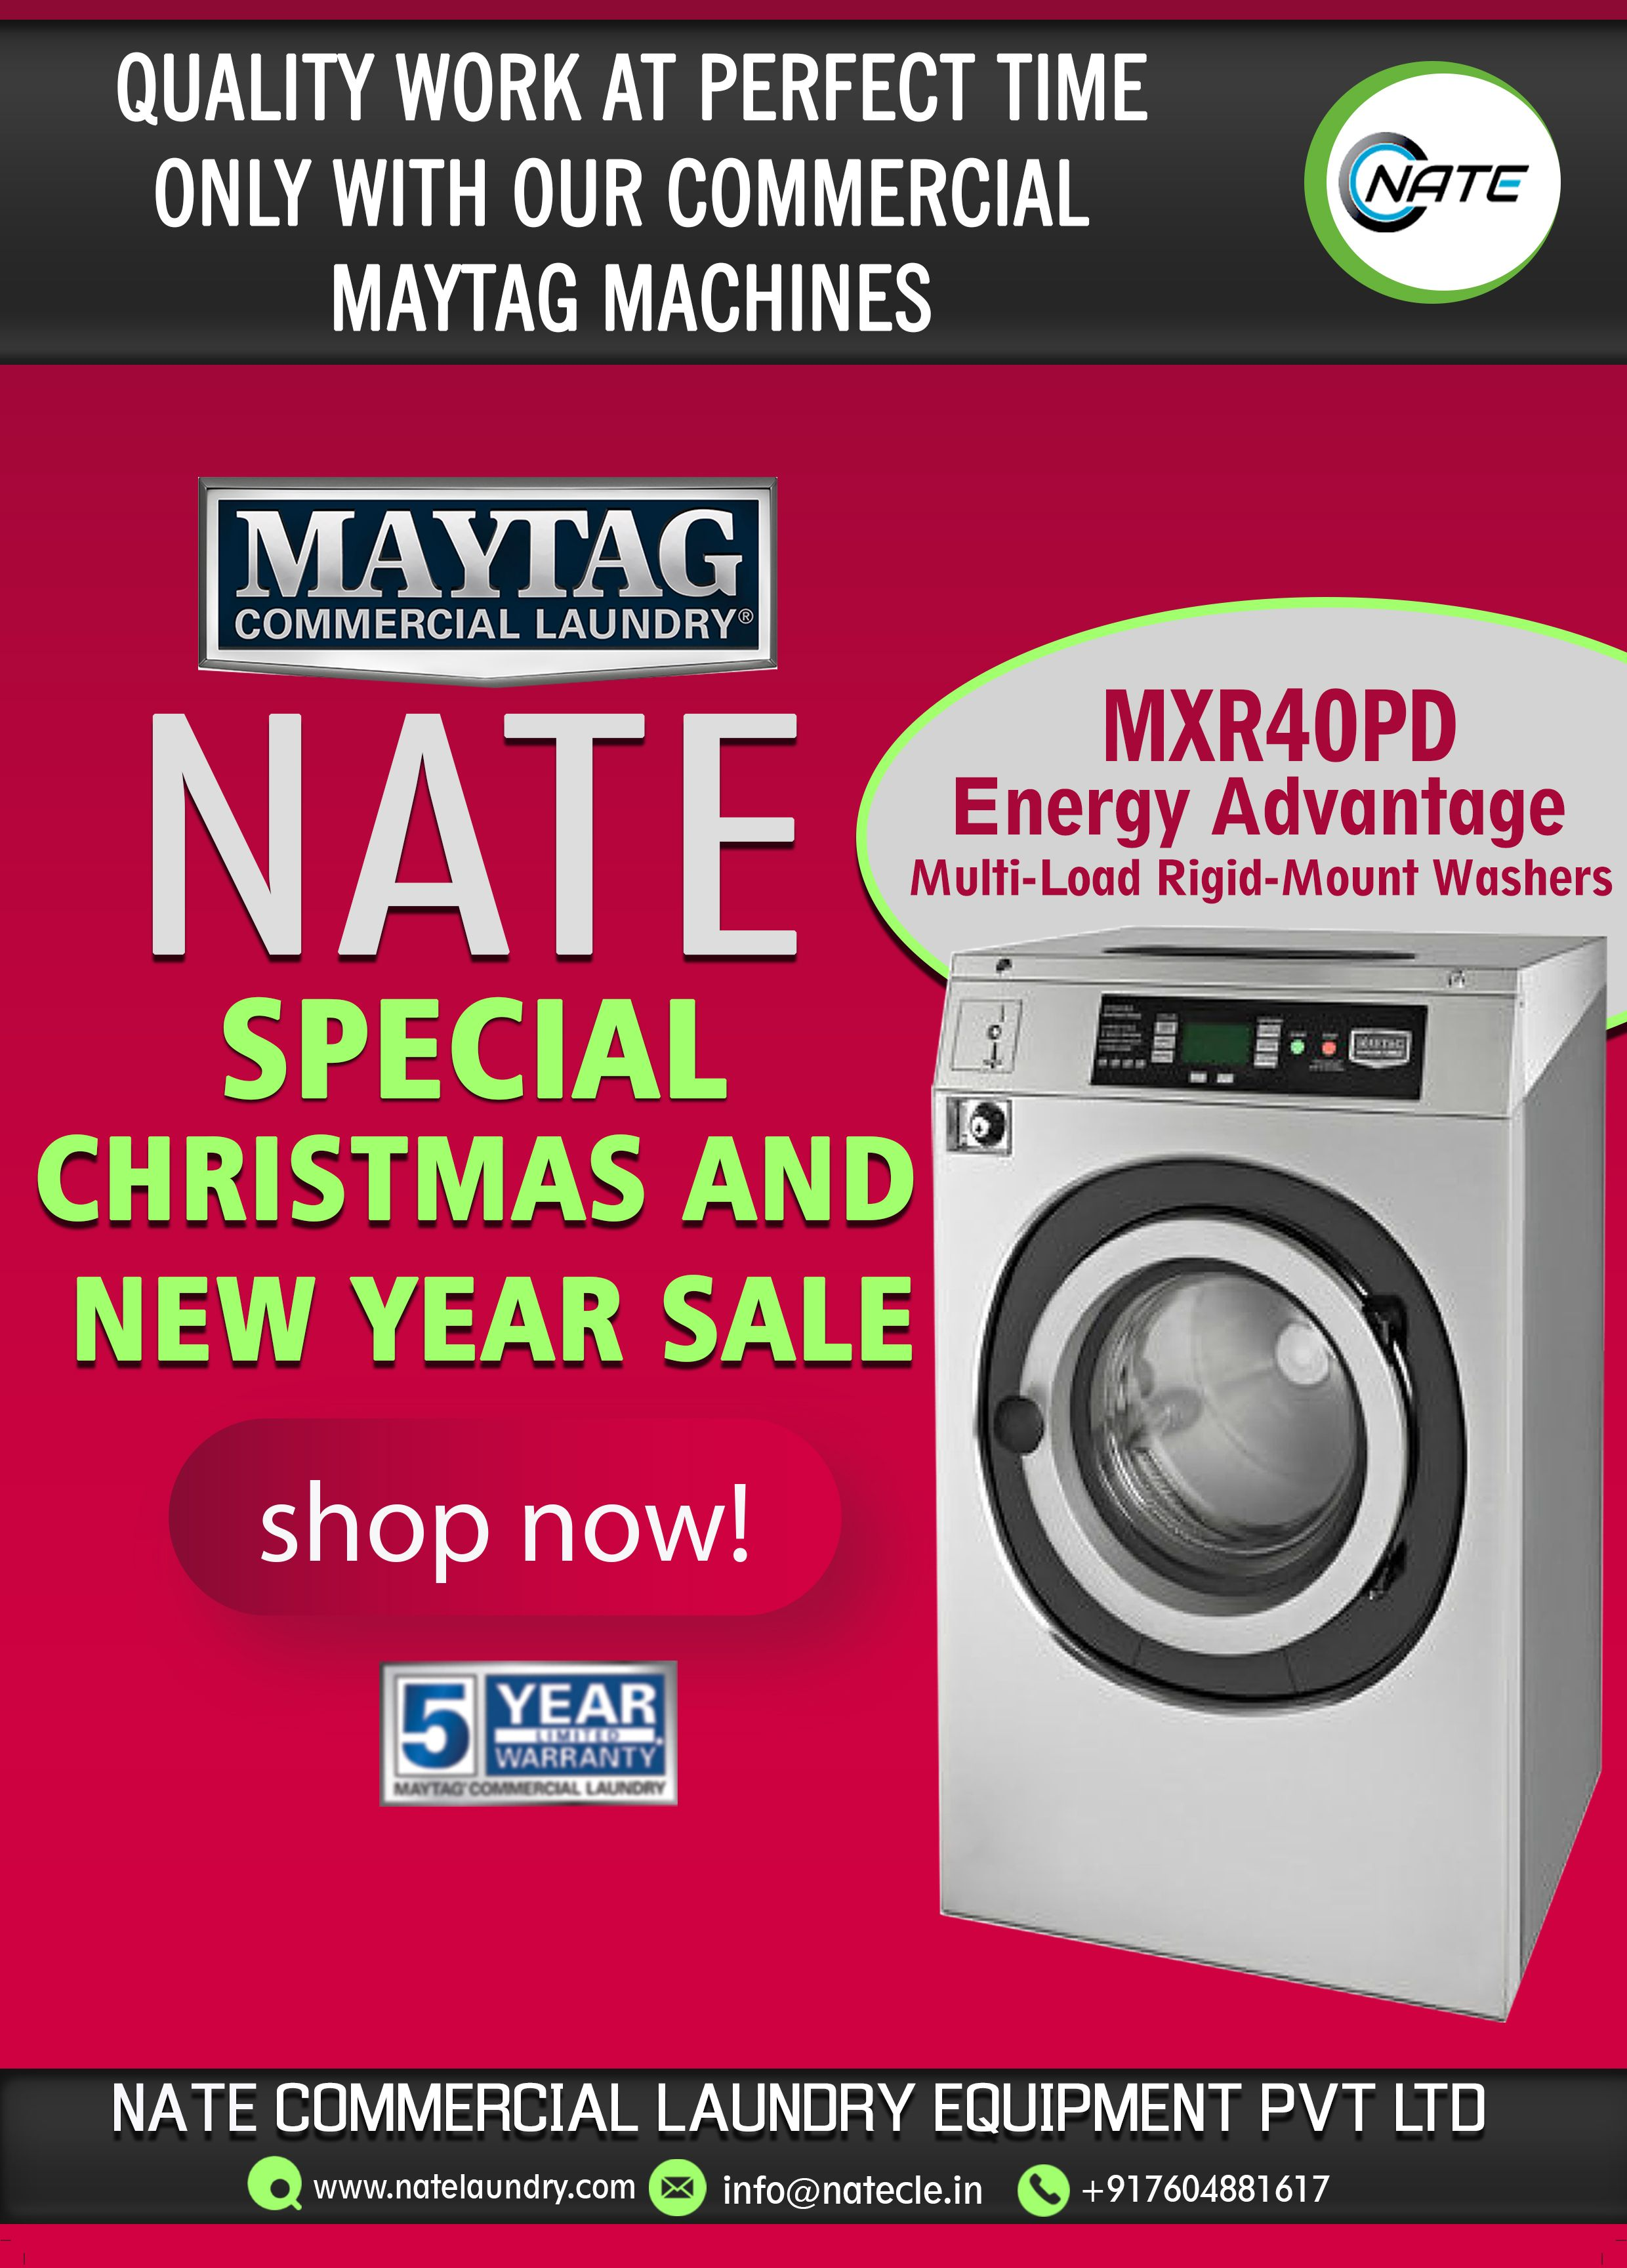 Pin By Nate Commercial Laundry Equipment Pvt Ltd On Laundry